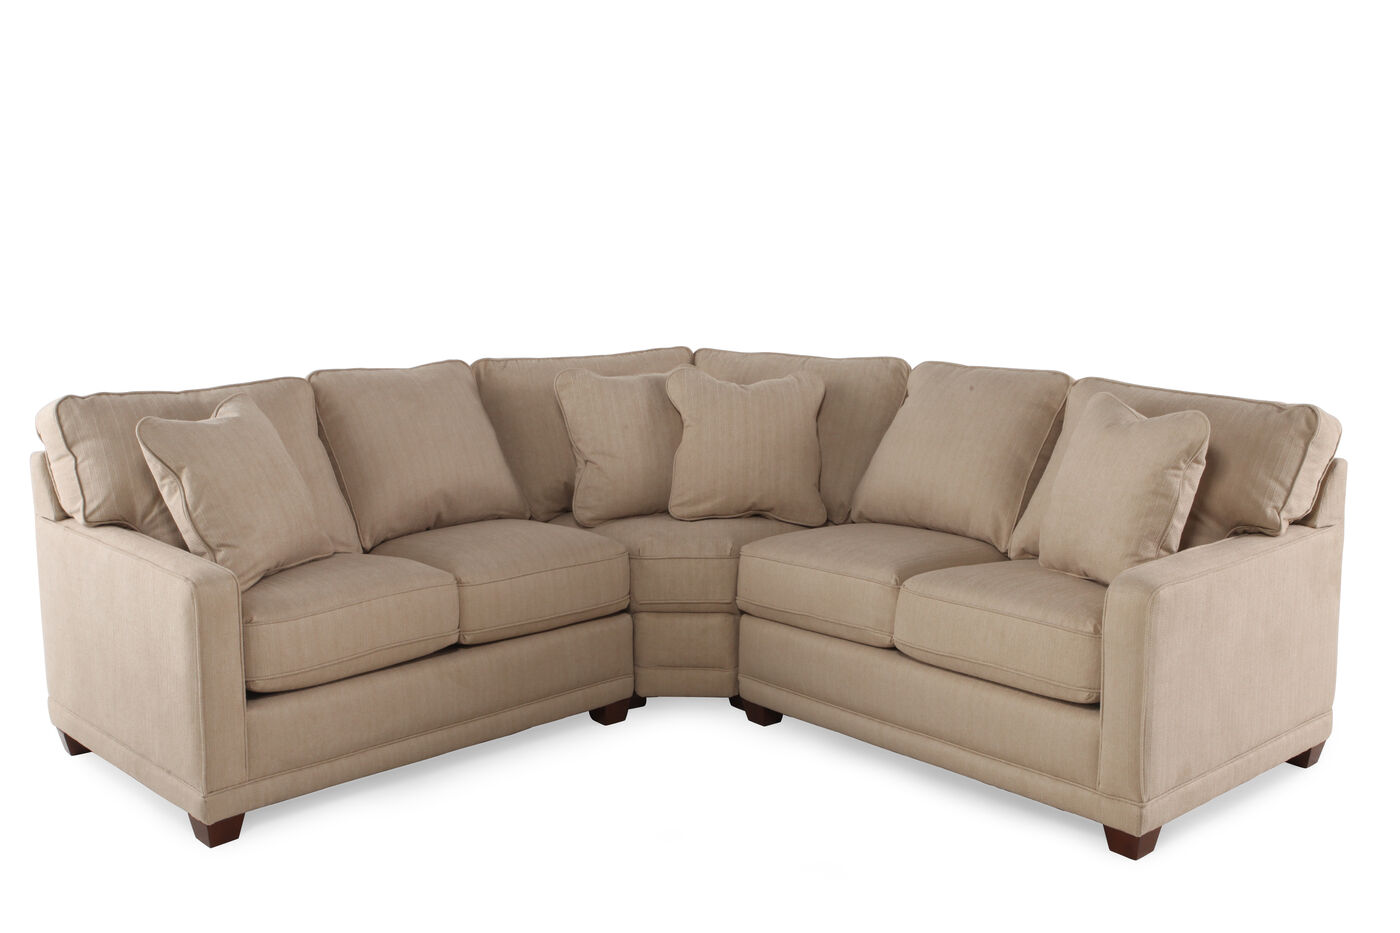 La z boy kennedy toast three piece sectional mathis for La z boy sectional sofa bed